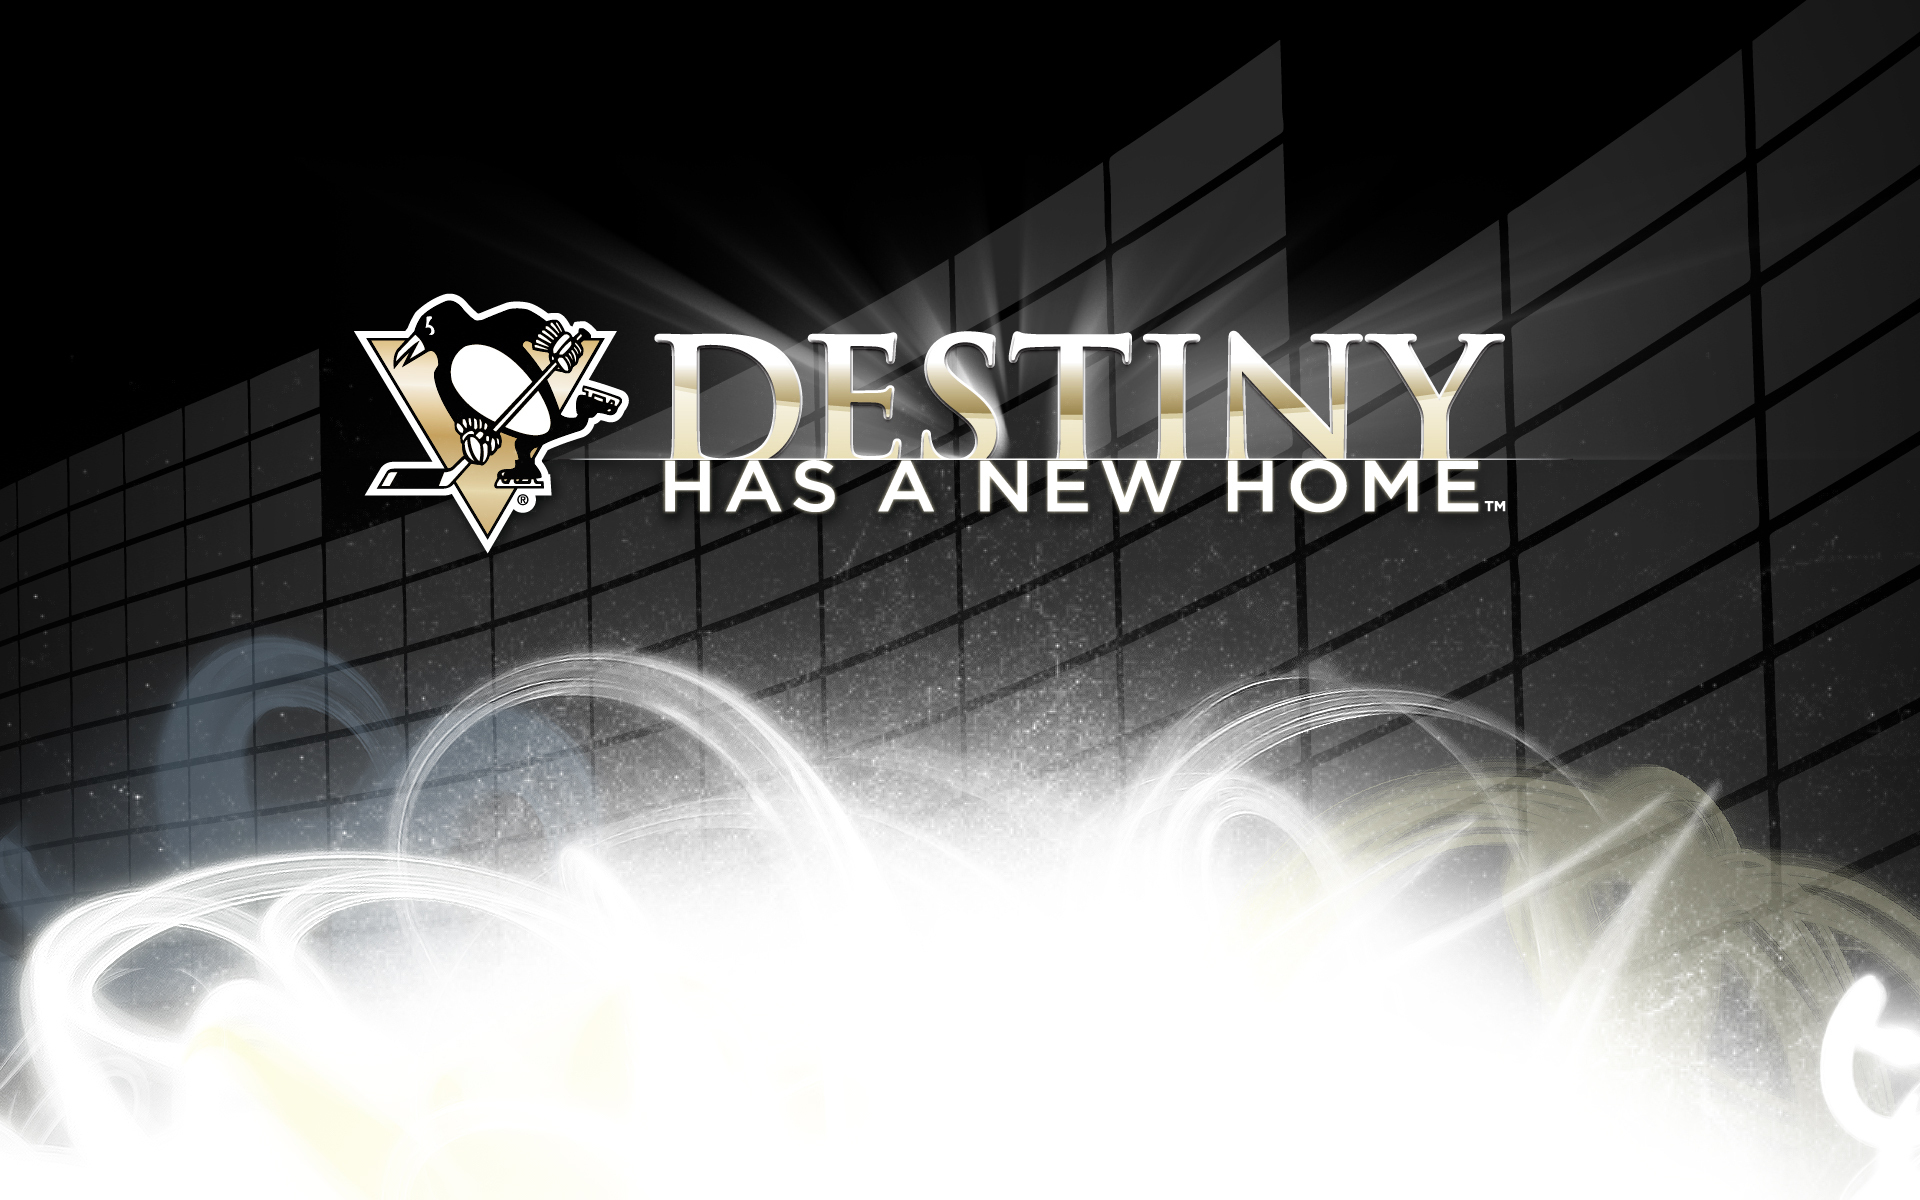 39 destiny has a new home 39 pittsburgh penguins wallpaper for Wallpaper new home